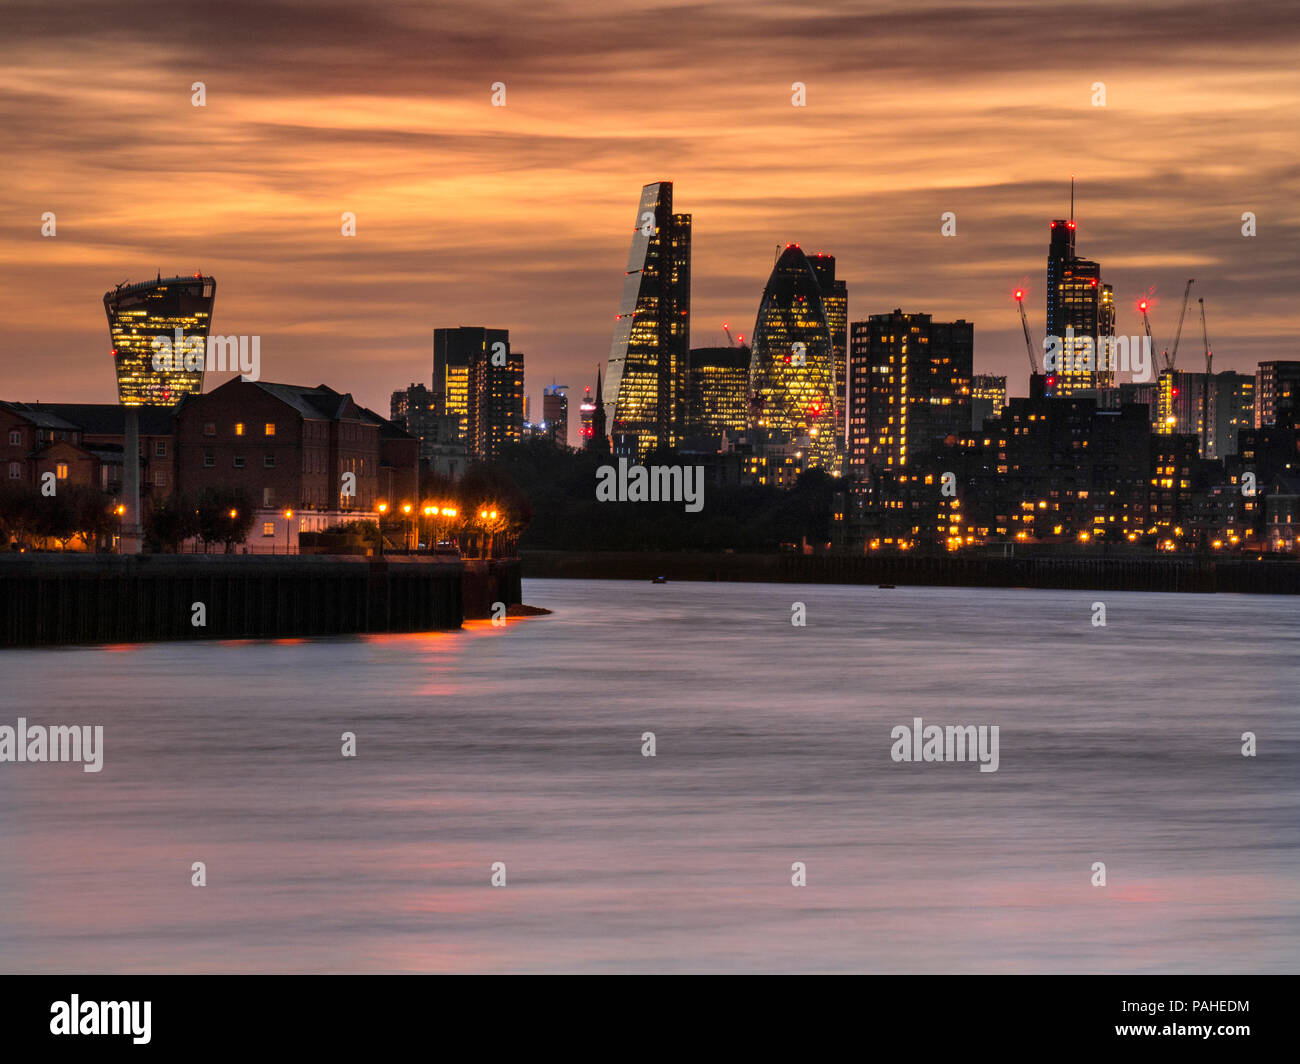 London financial city centre offices and skyscrapers towers at sunset dusk viewed along The River Thames from Canary Wharf including.... popular nickname buildings 'WalkieTalkie','Gherkin' Cheese-Grater' etc  London EC1 - Stock Image